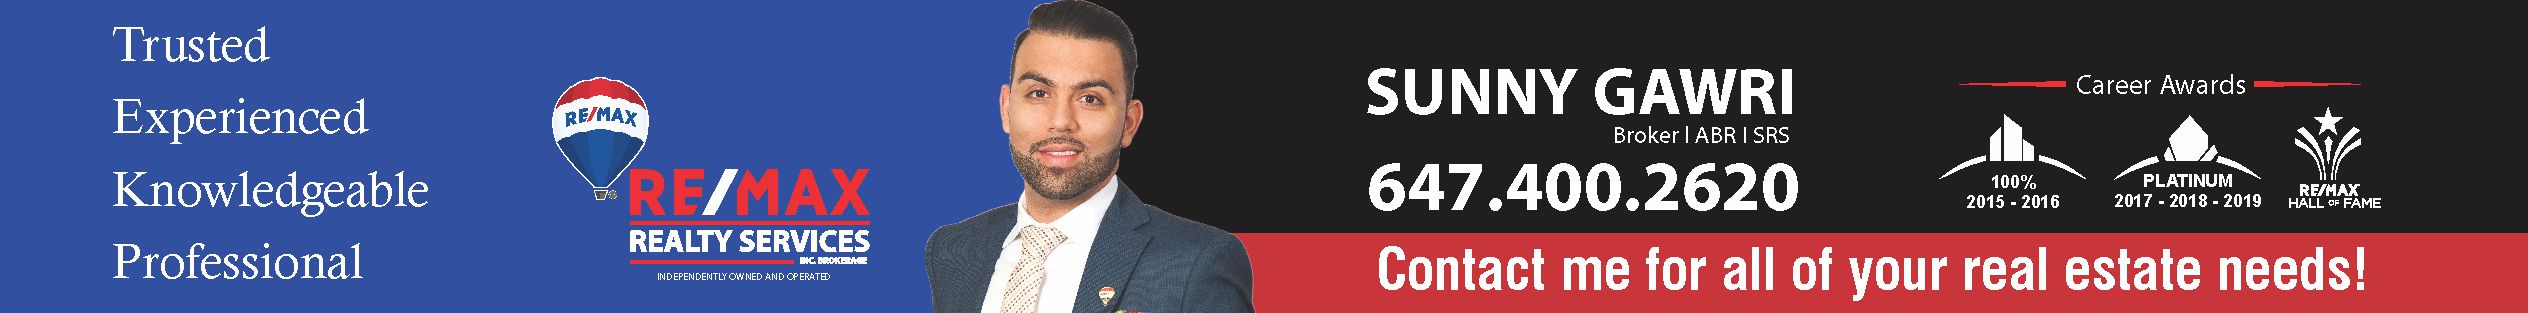 Toronto Homes for Sale - Page - 24